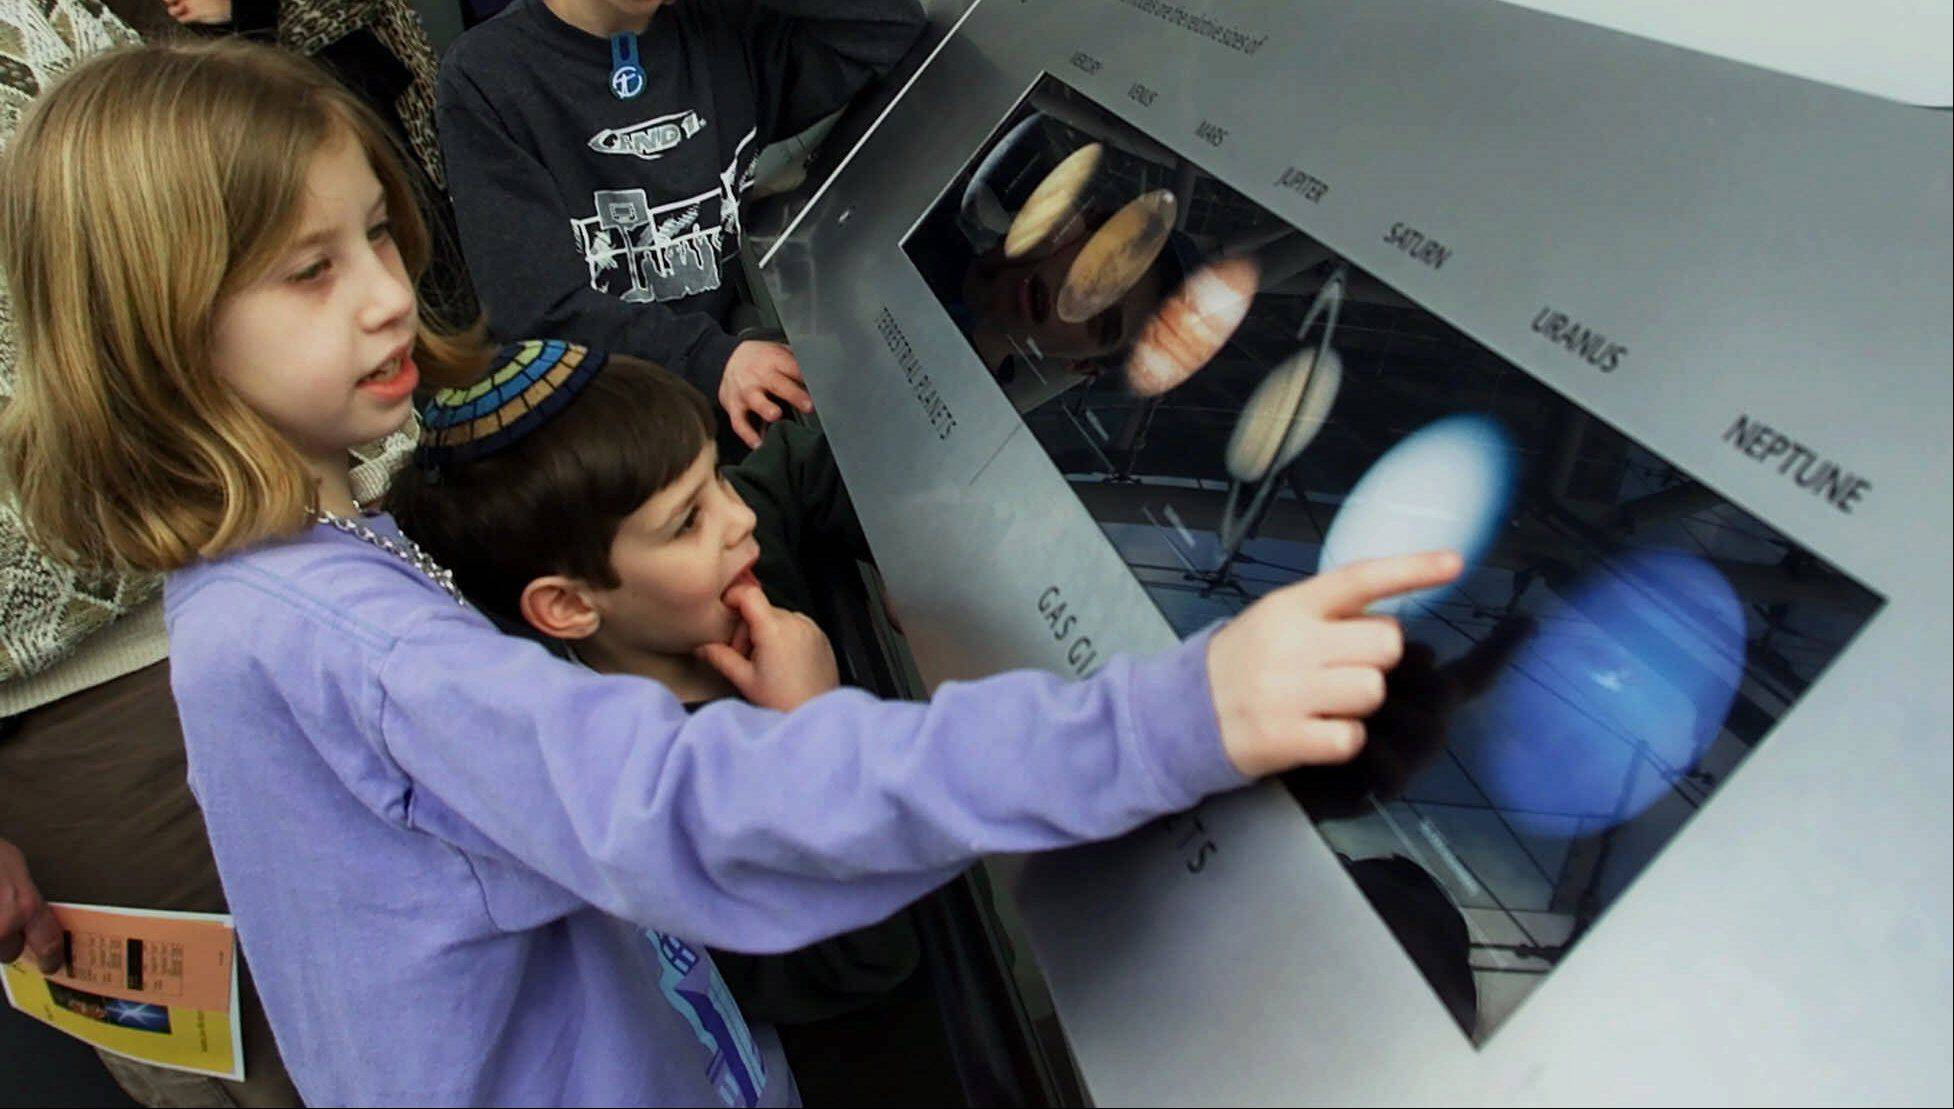 Tova Hagler, 10, left, reads through the names of the planets with her brother, Yaakov, 5, as they walk through the Scales of the Universe exhibit at the Rose Center for Earth and Space at the American Museum of Natural History in New York. Pluto was considered a planet from 1930 to 2006, but is now classified as a trans-Neptunian object.